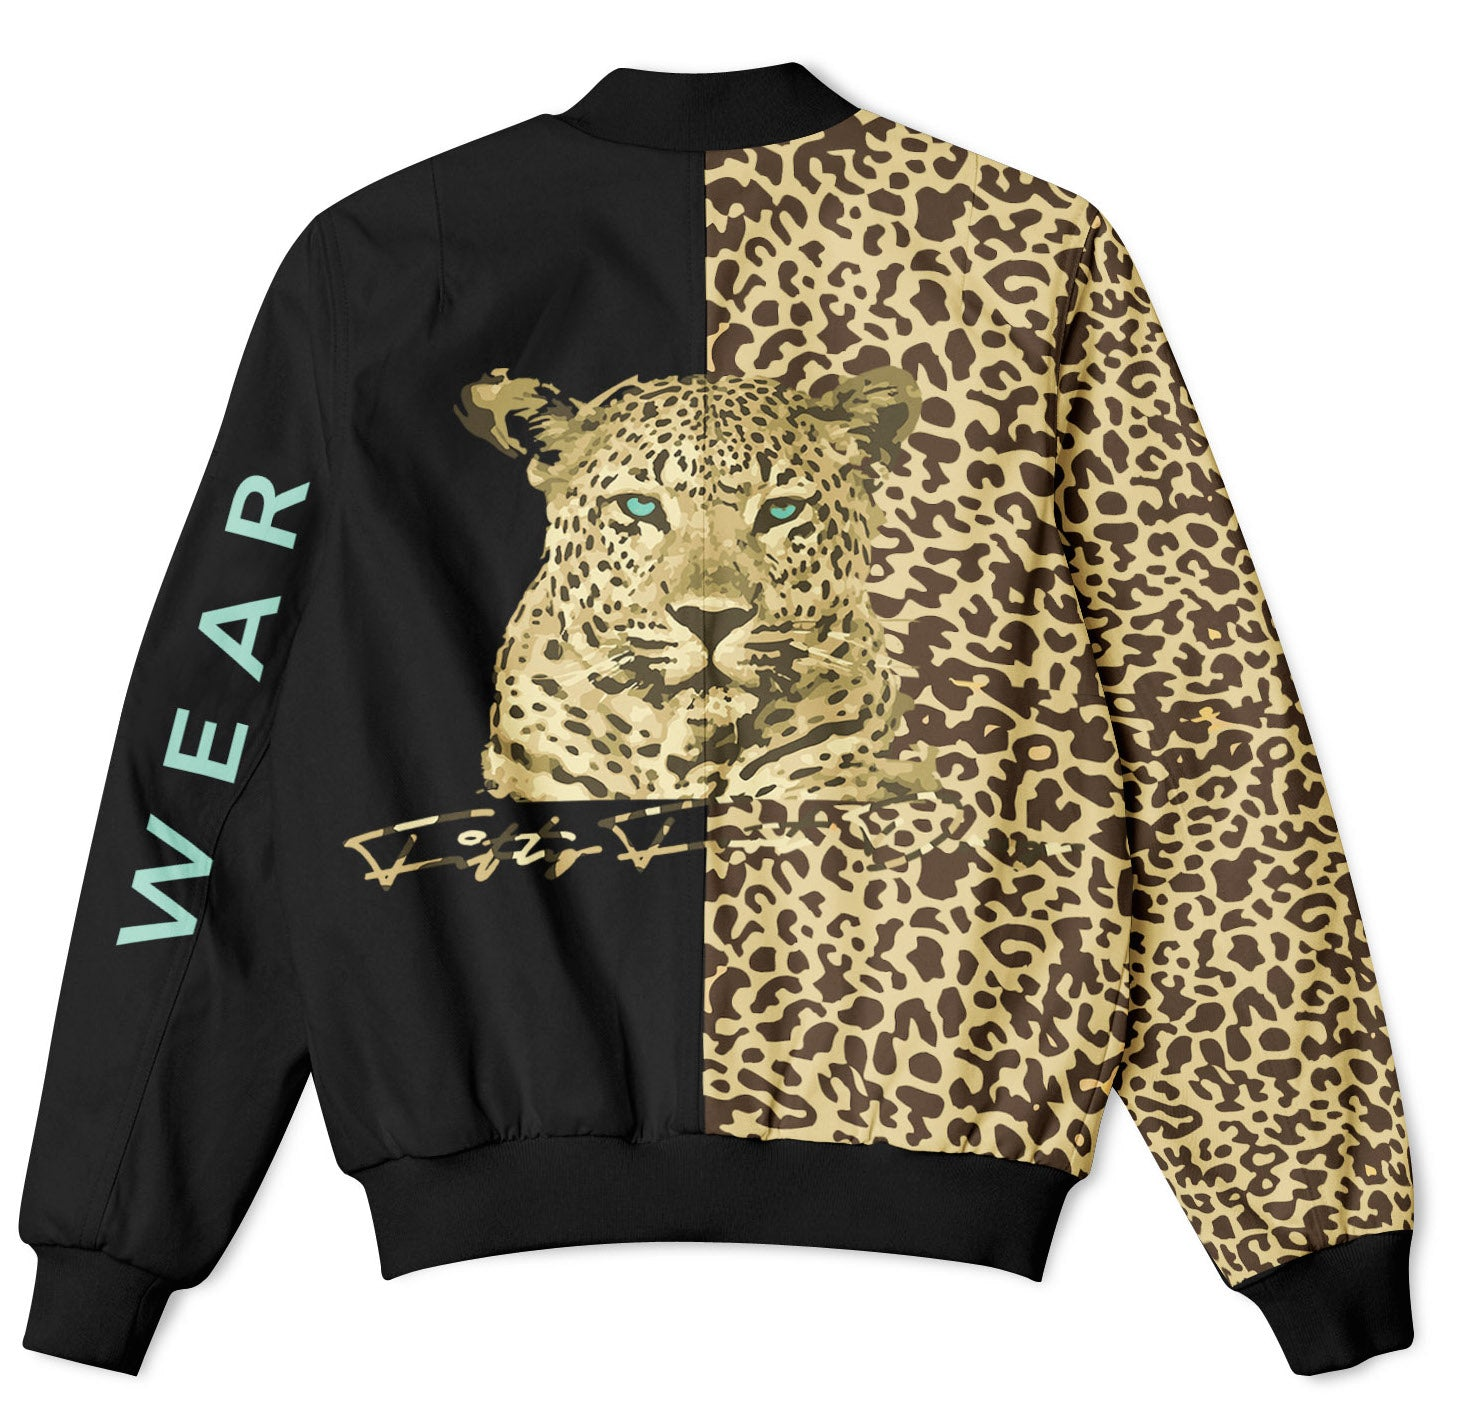 HALF ANIMAL HALF AMAZING - FIFTY FOOT DROP - LEOPARD BOMBER JACKET  Fifty Foot Drop  fresh-on-road.myshopify.com Fifty Foot Drop